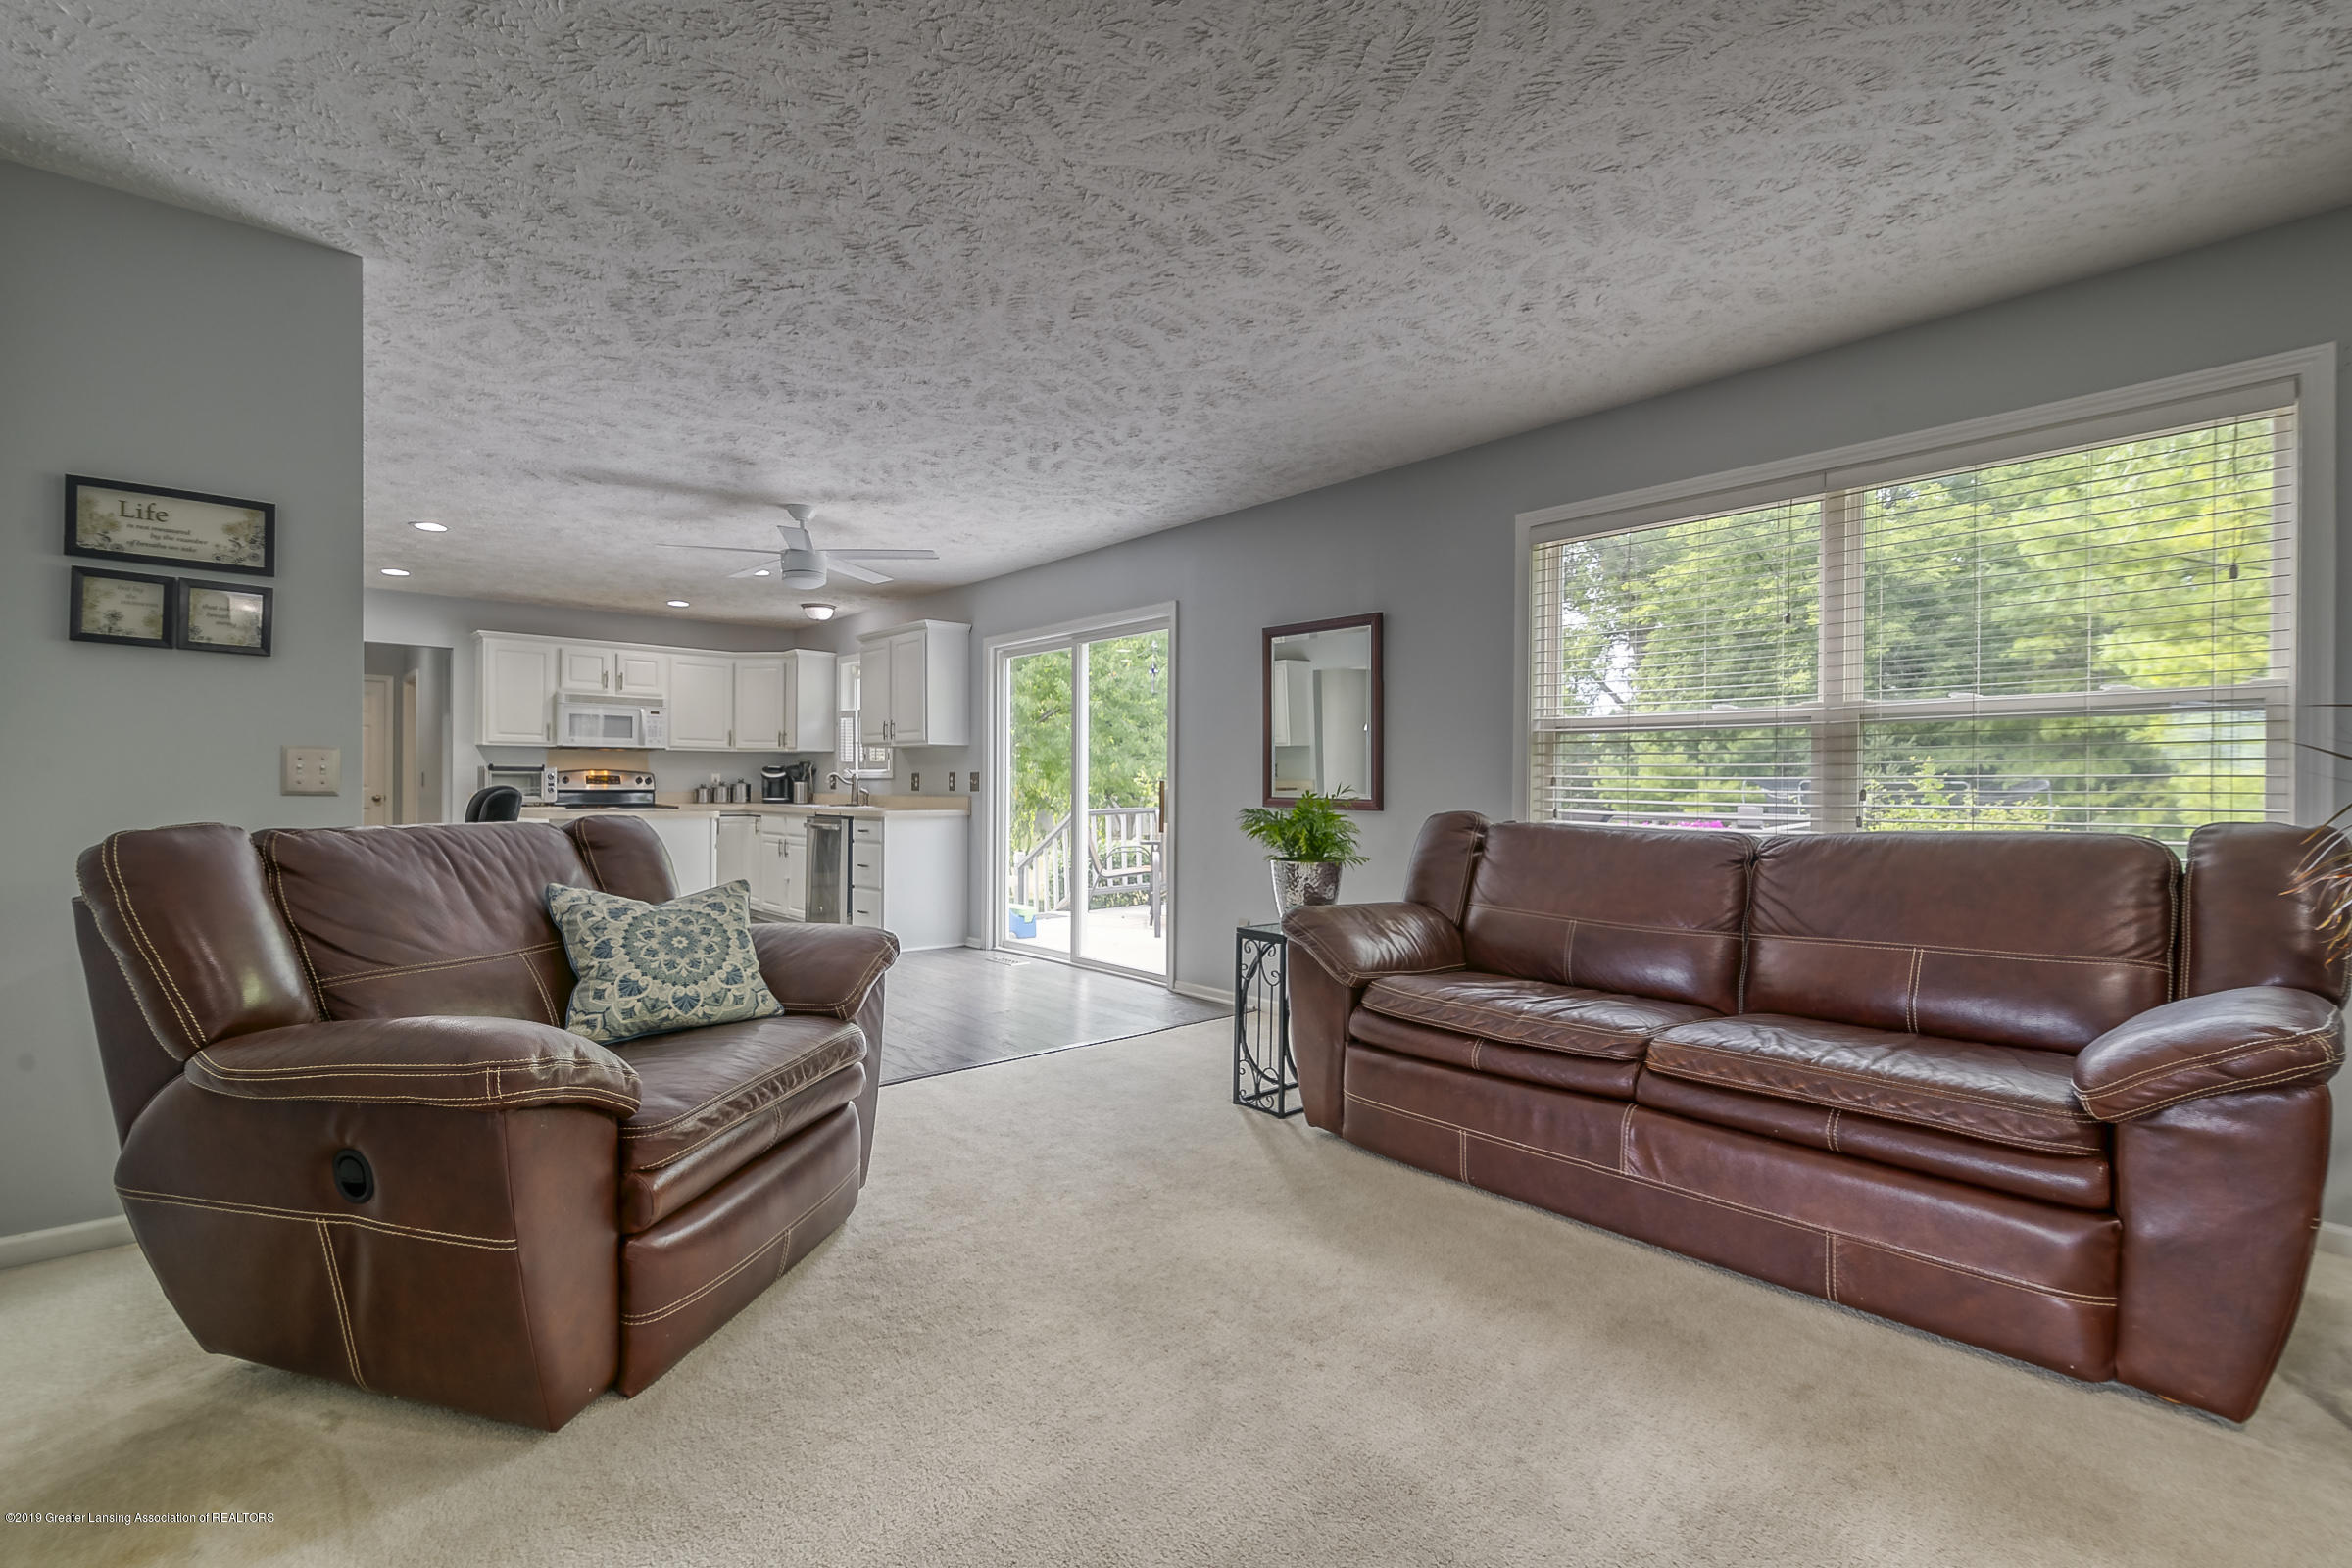 5712 Nightingale Dr - FAMILY ROOM - 3